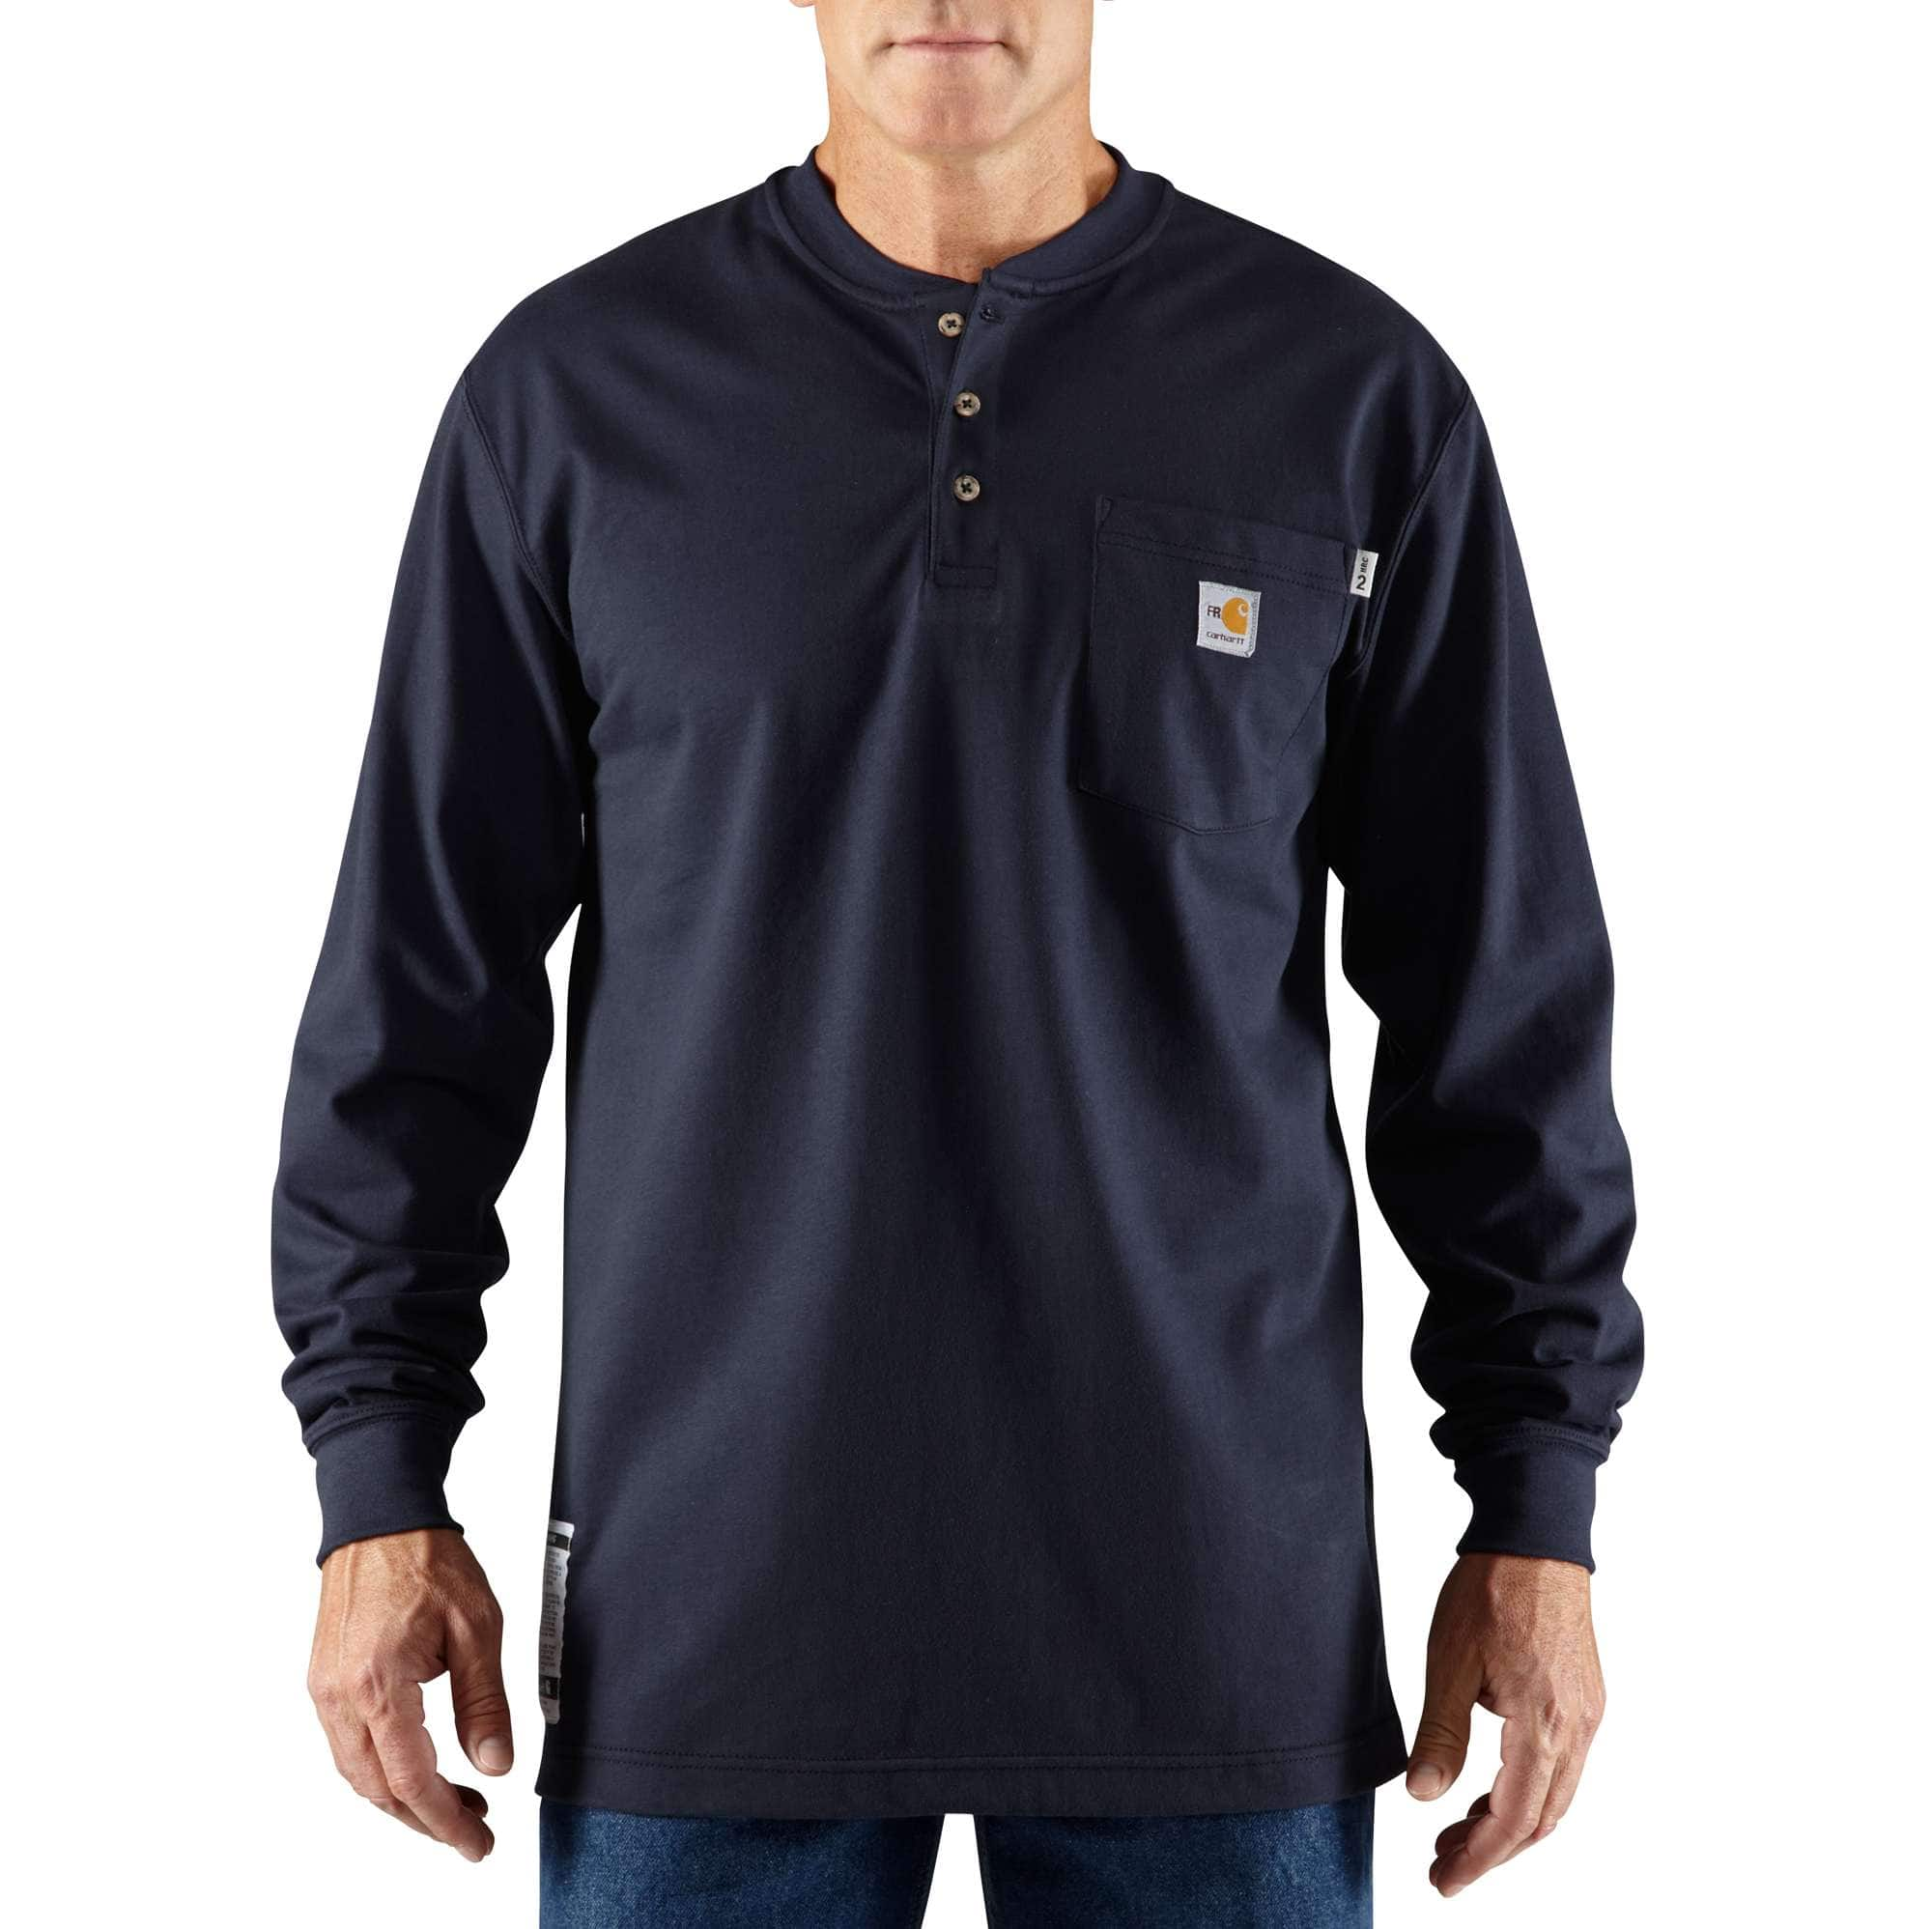 e183670f7635 Men s Flame-Resistant Carhartt Force® Cotton Long-Sleeve Henley ...